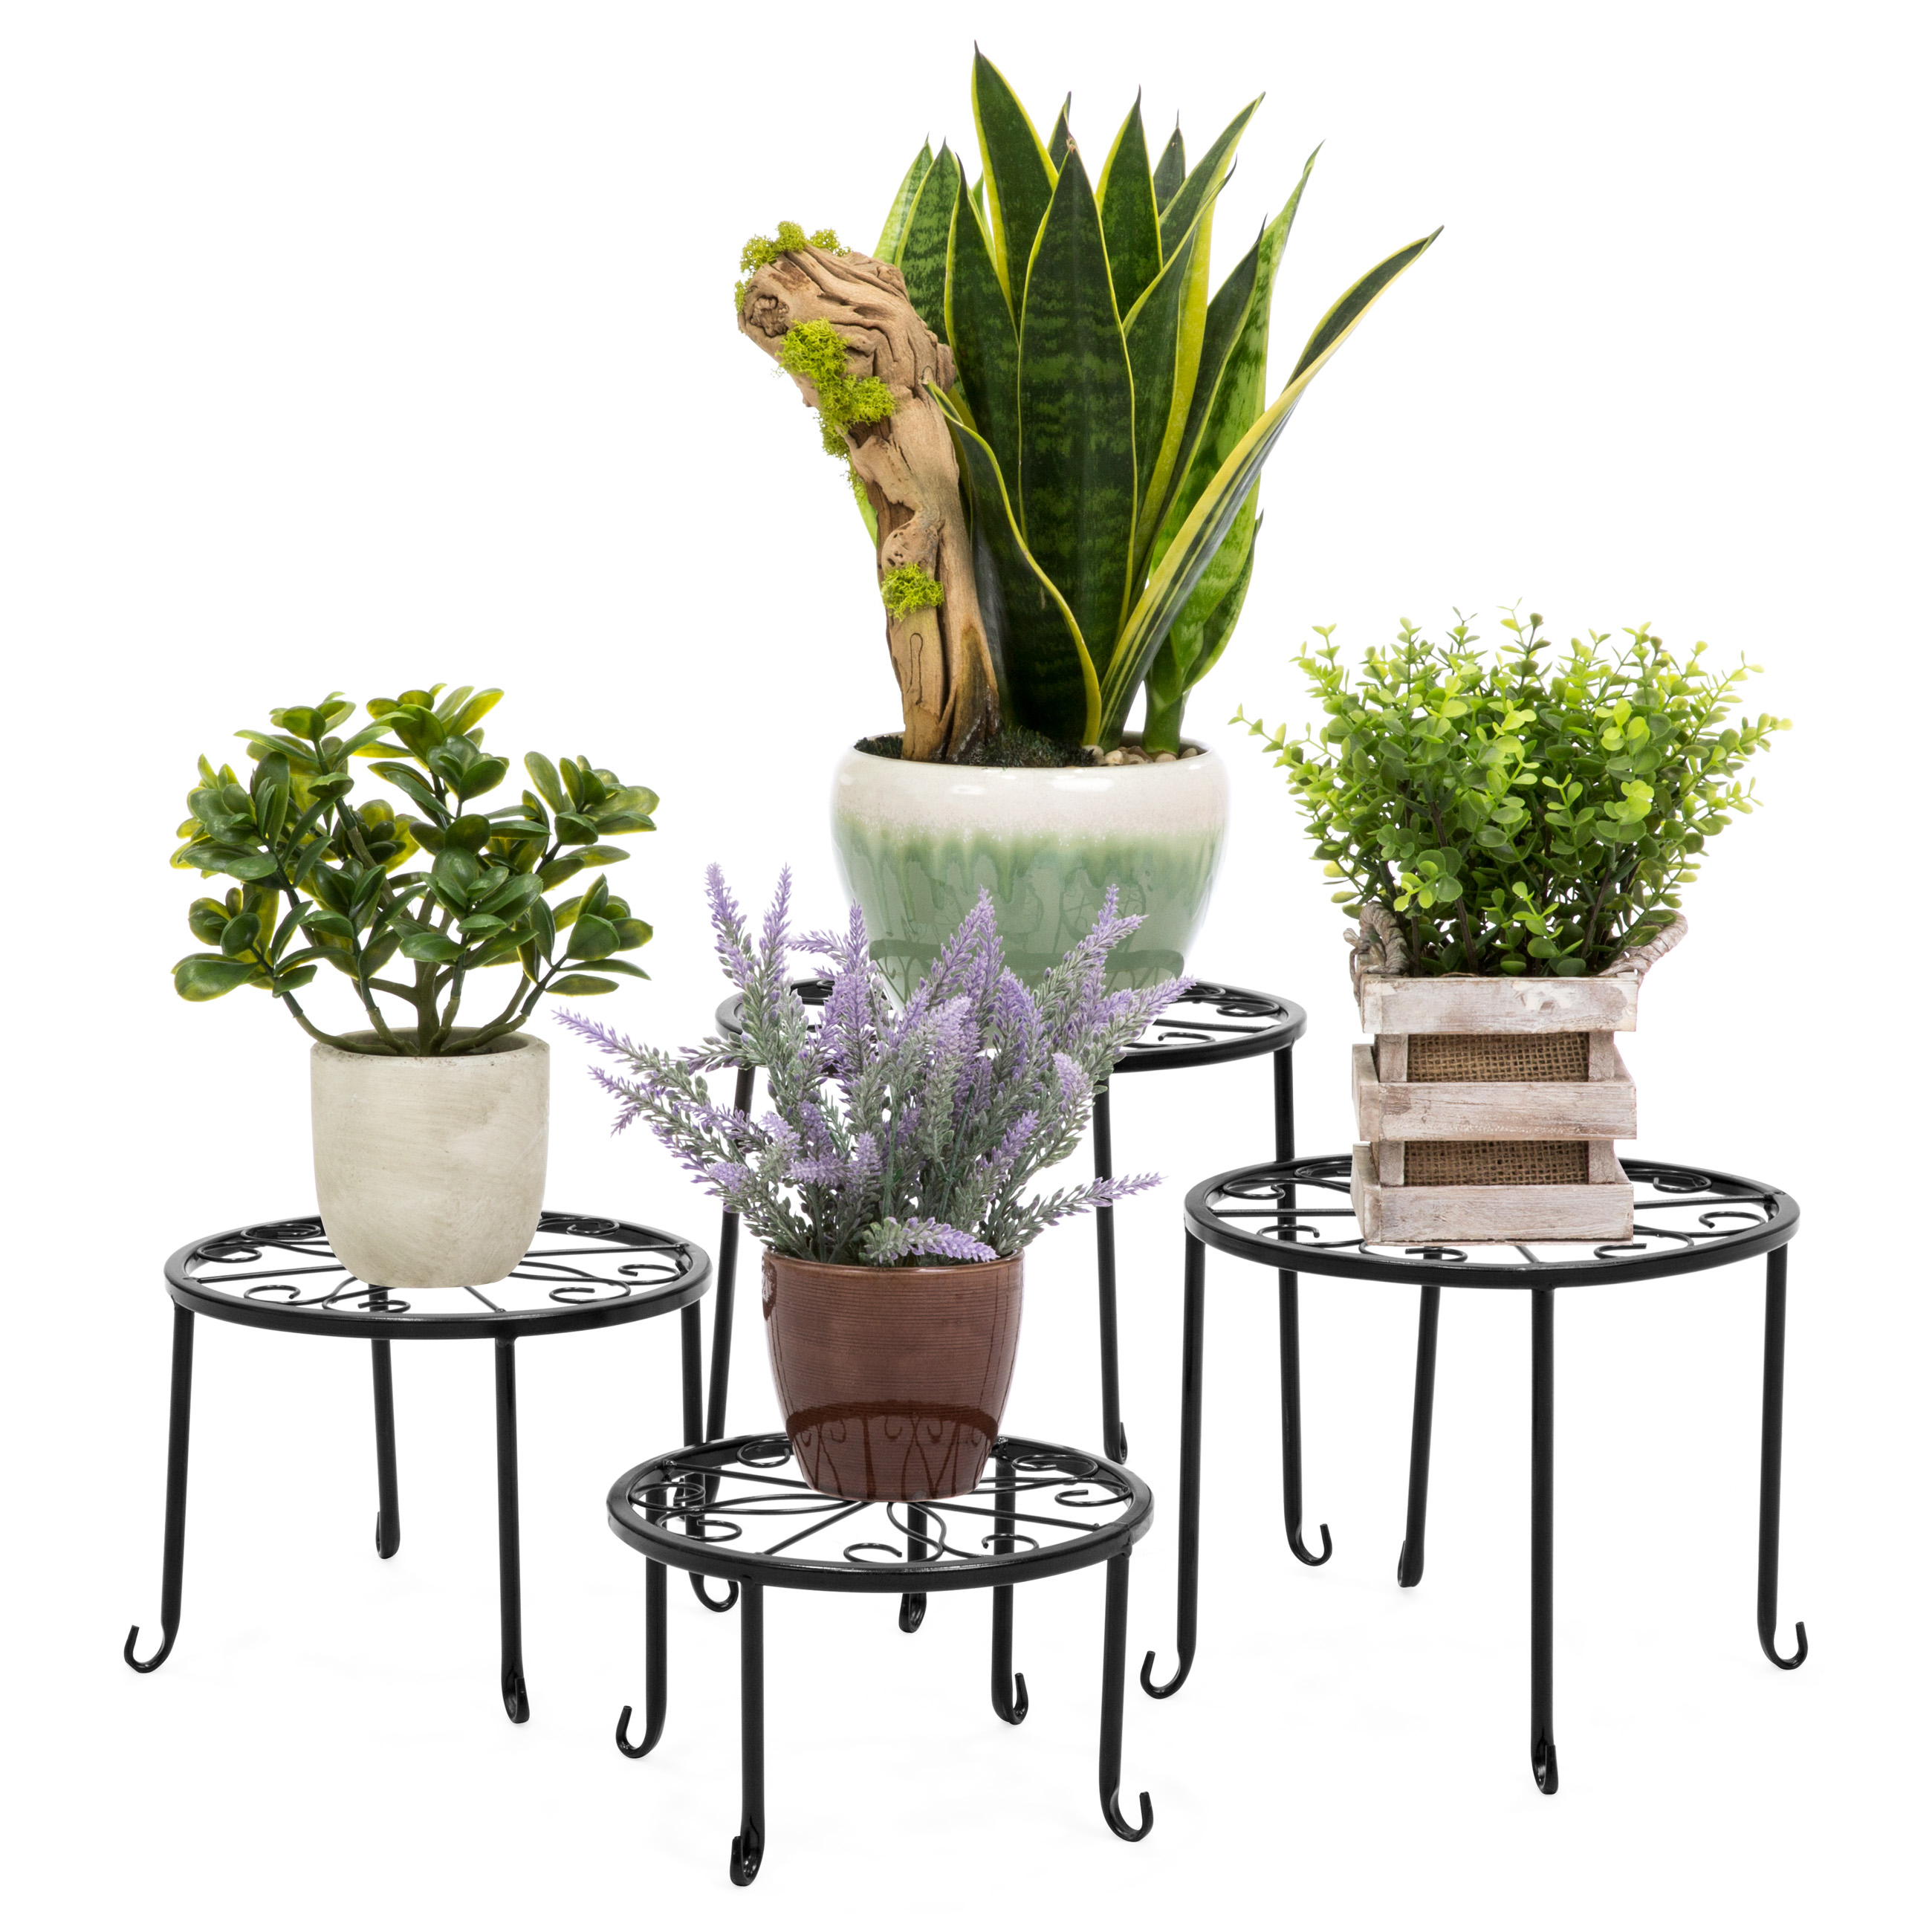 Best Choice Products 4-in-1 Flower Plant Pot Stand Rack Set (Black)